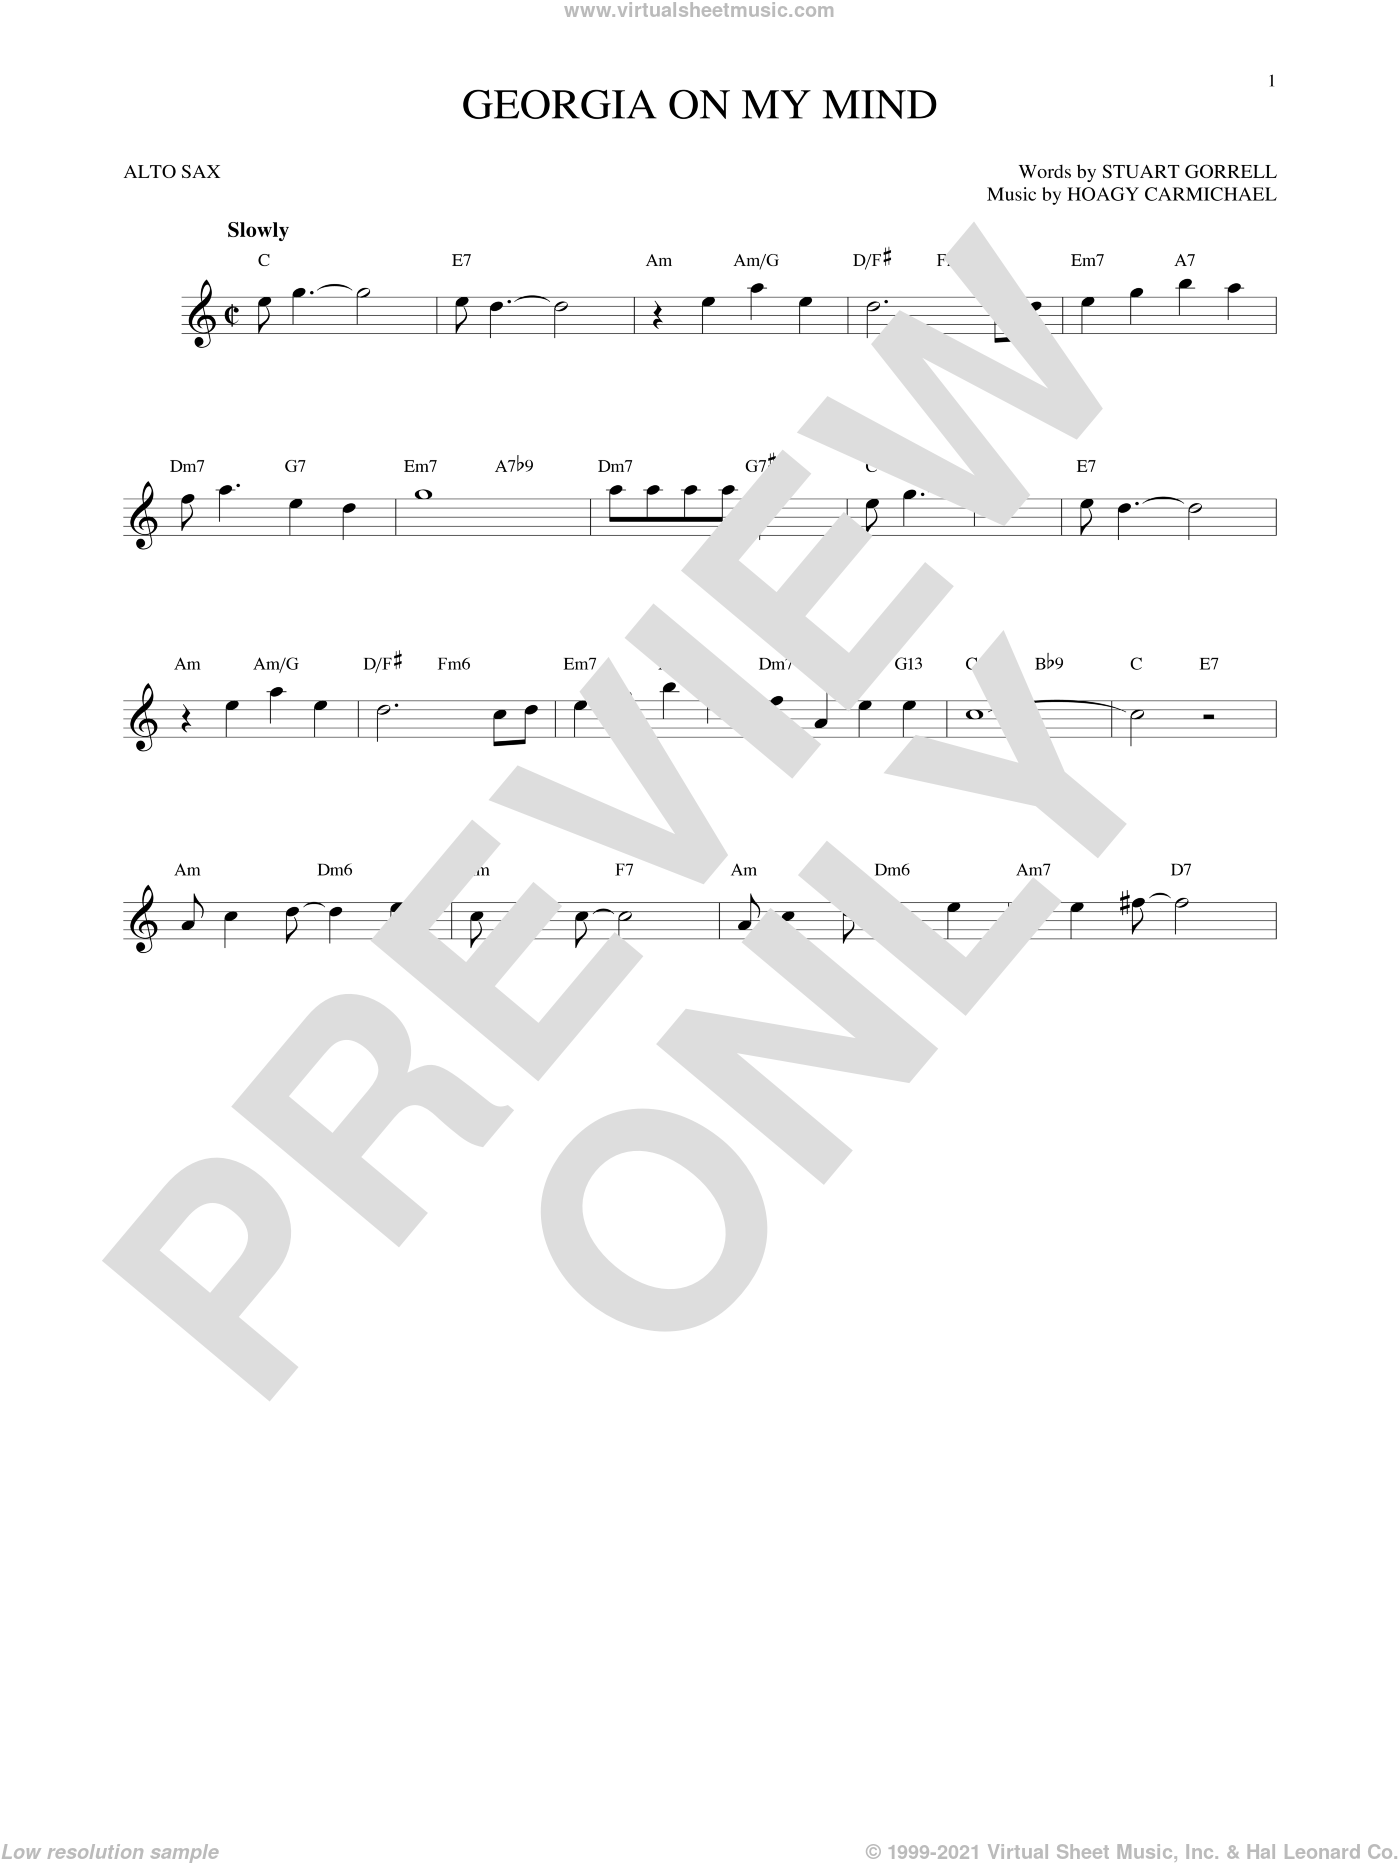 Georgia On My Mind sheet music for alto saxophone solo by Hoagy Carmichael, Ray Charles, Willie Nelson and Stuart Gorrell, intermediate. Score Image Preview.